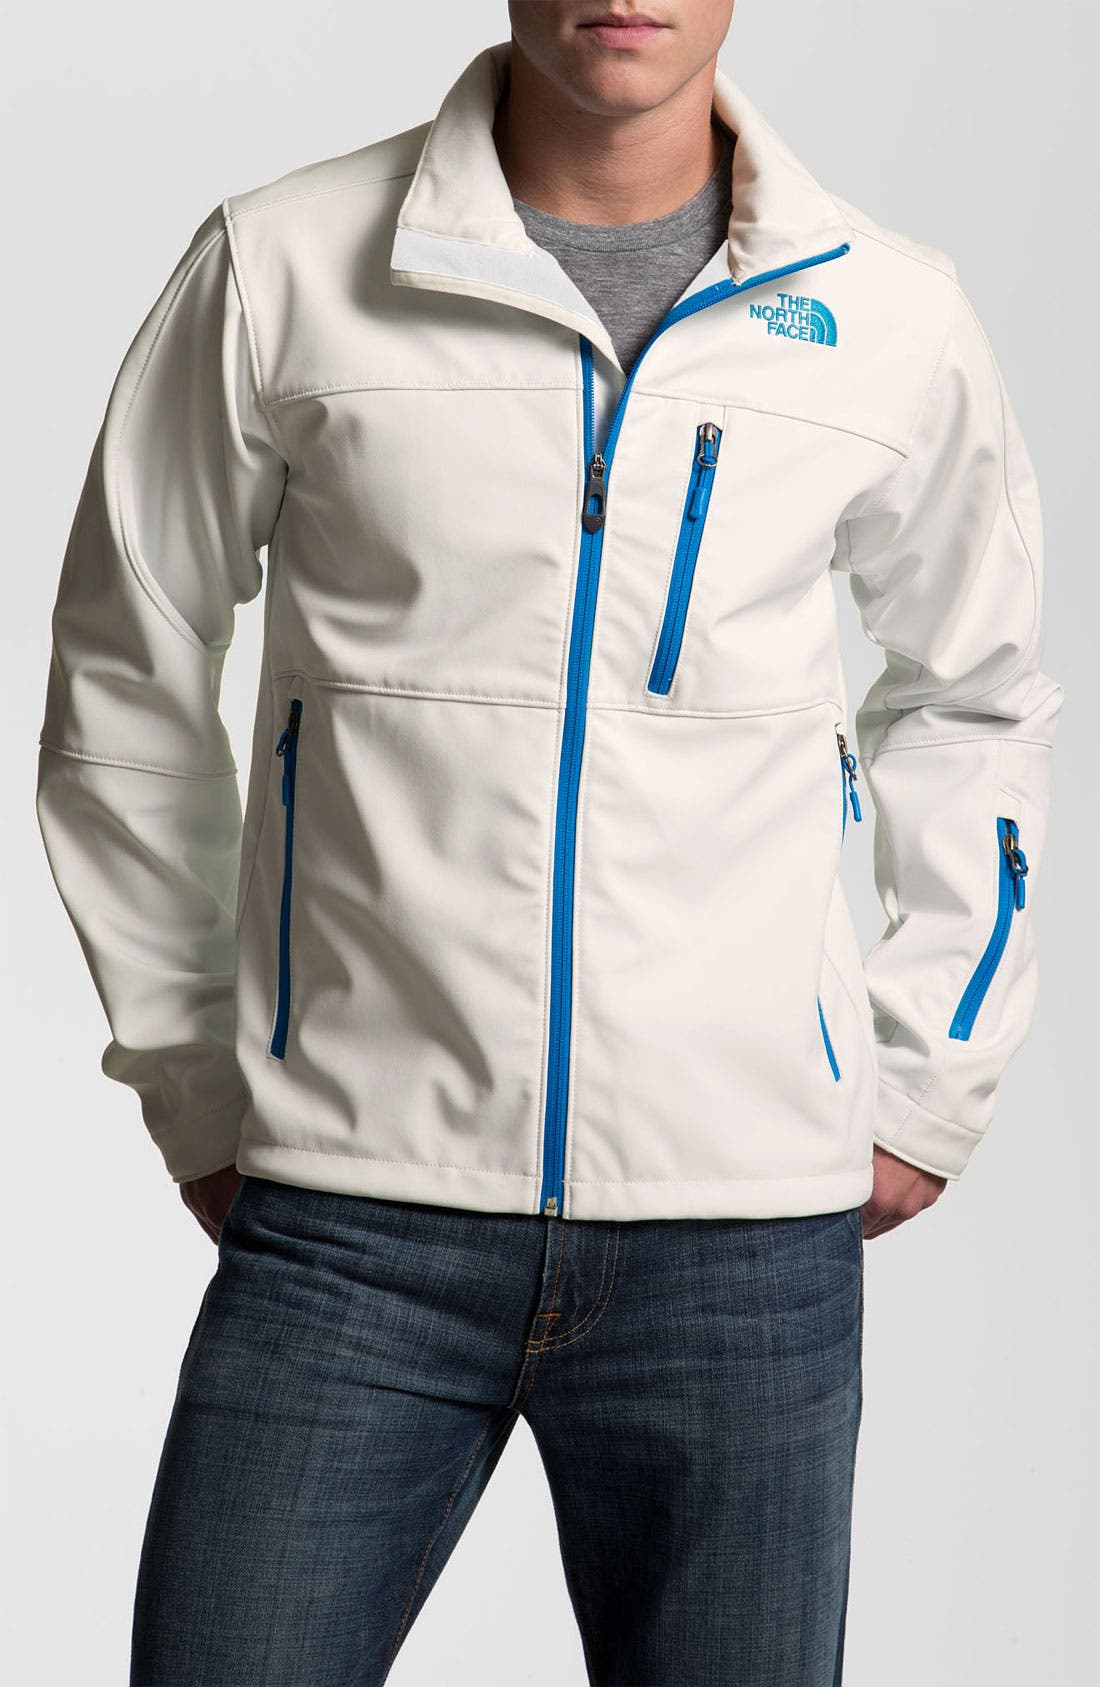 Alternate Image 1 Selected - The North Face 'Palmyra' Jacket